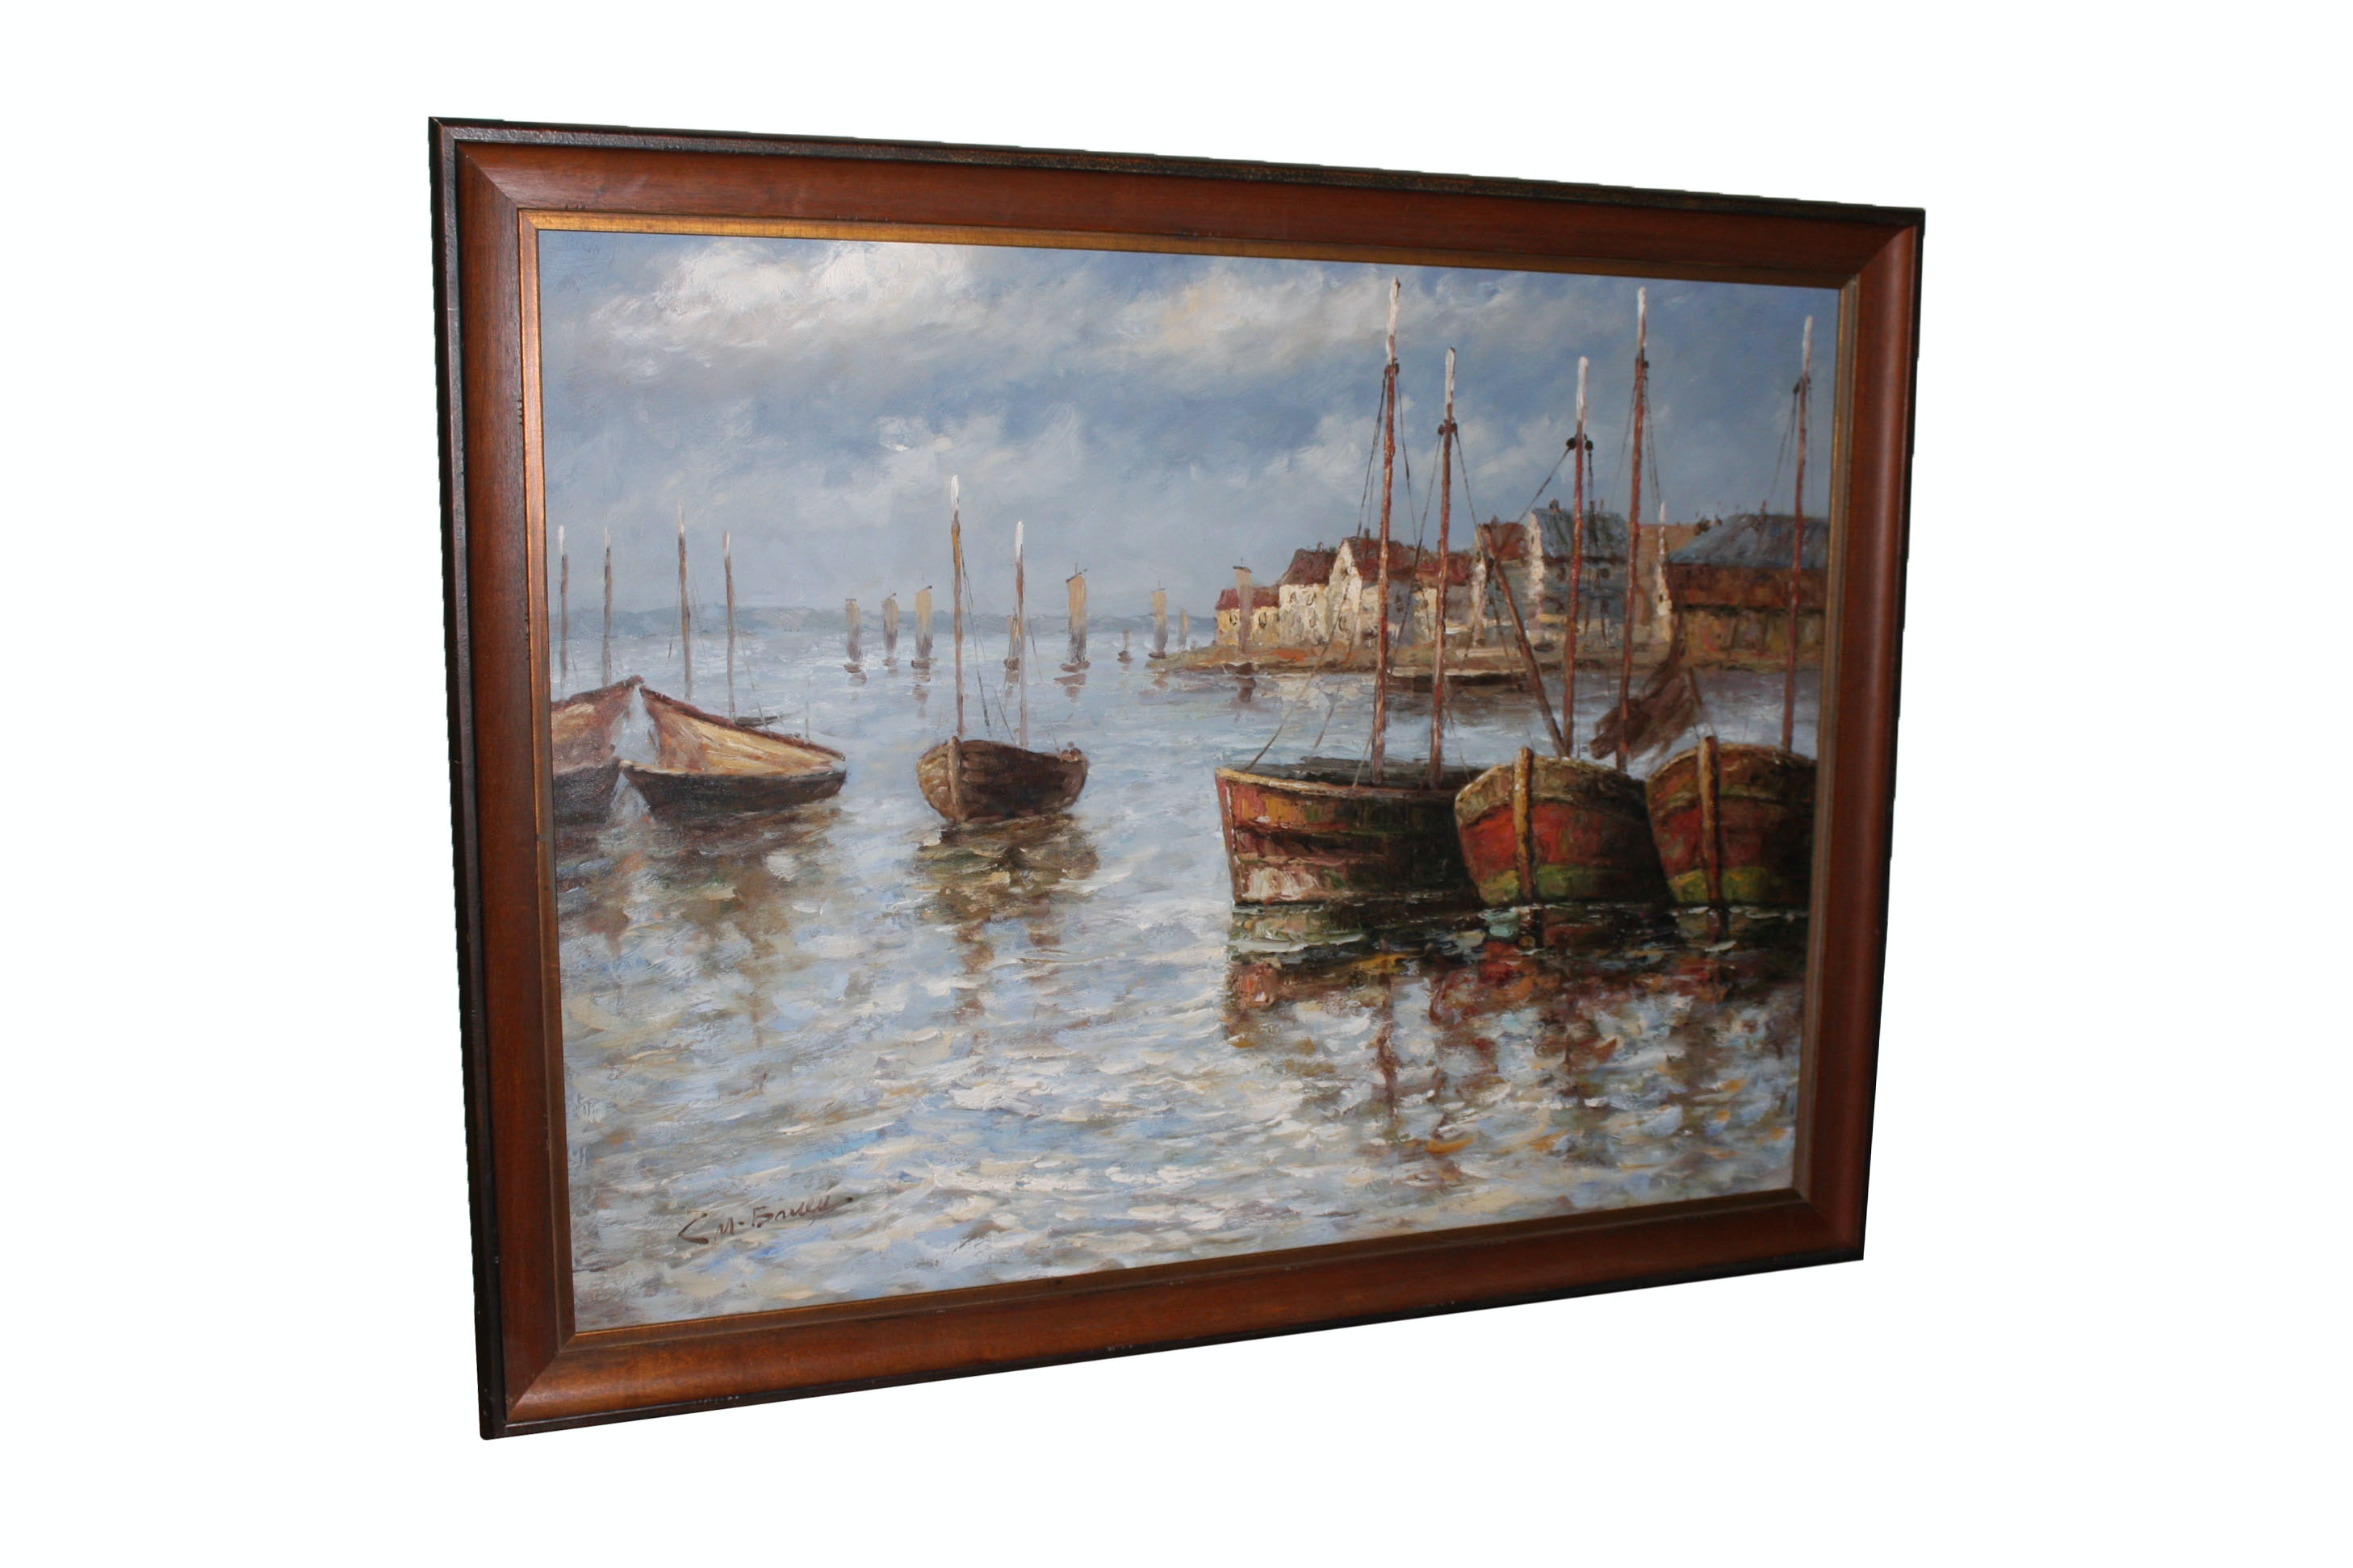 C.M. Baney Oil Painting of a Dock Scene